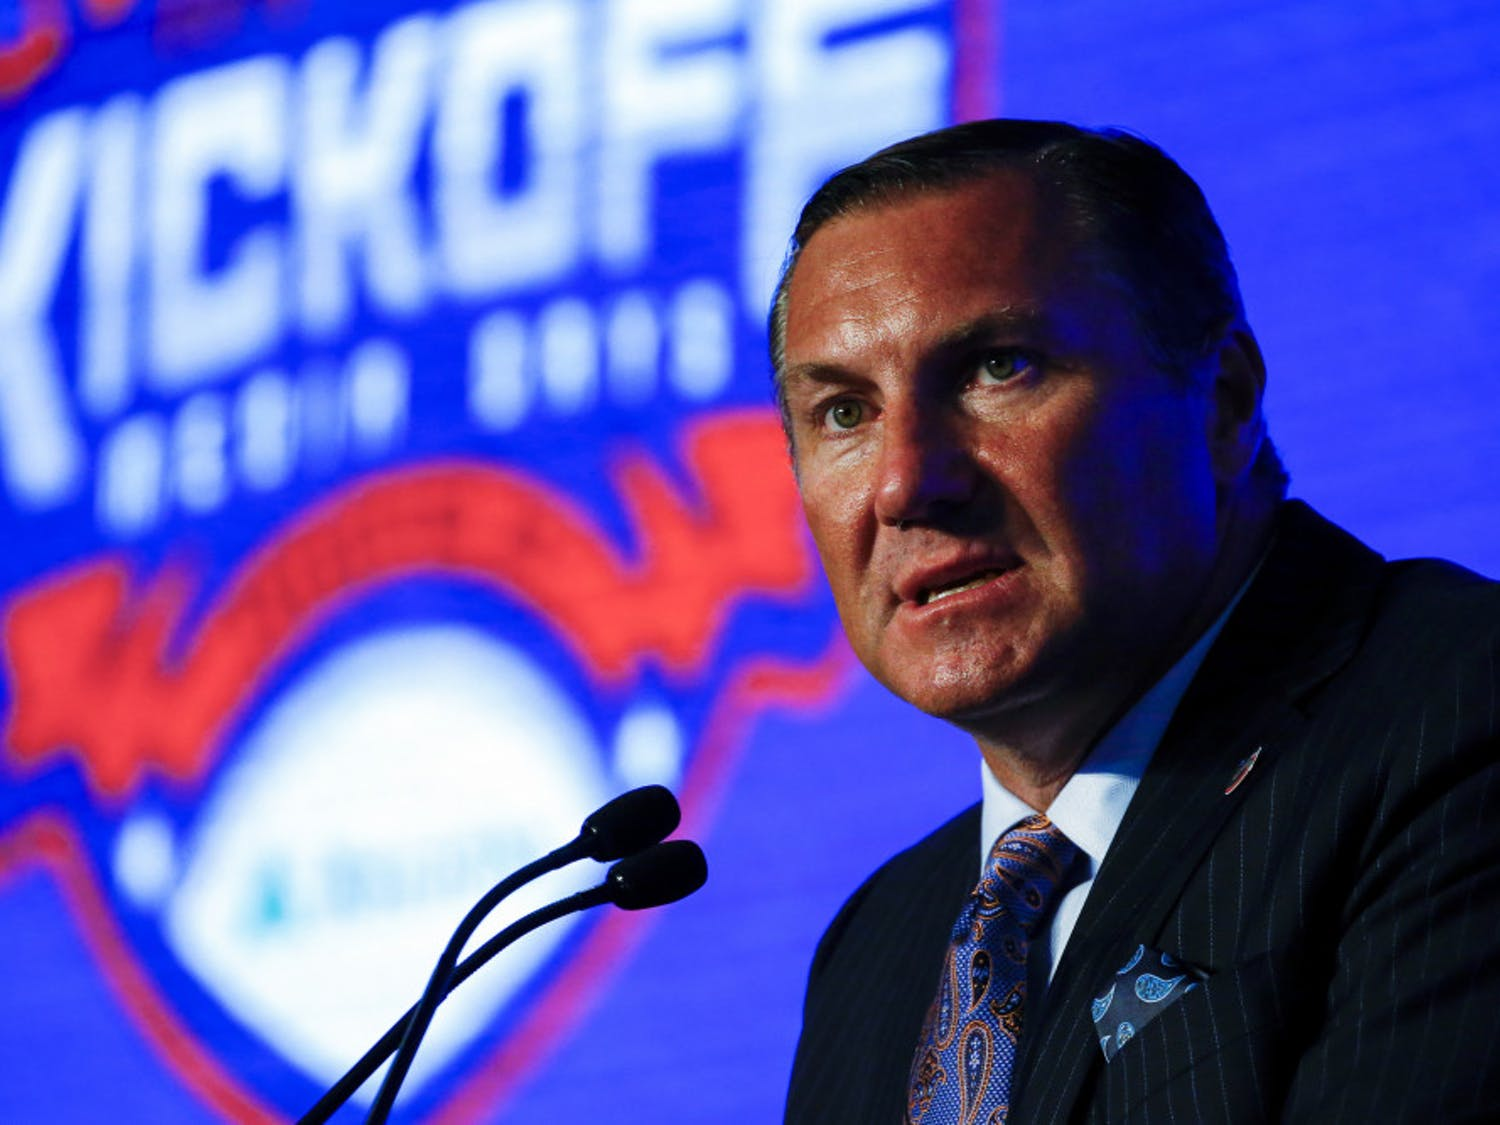 Head Coach Dan Mullen, of Florida, speaks during the NCAA college football Southeastern Conference Media Days, Monday, July 15, 2019, in Hoover, Ala.